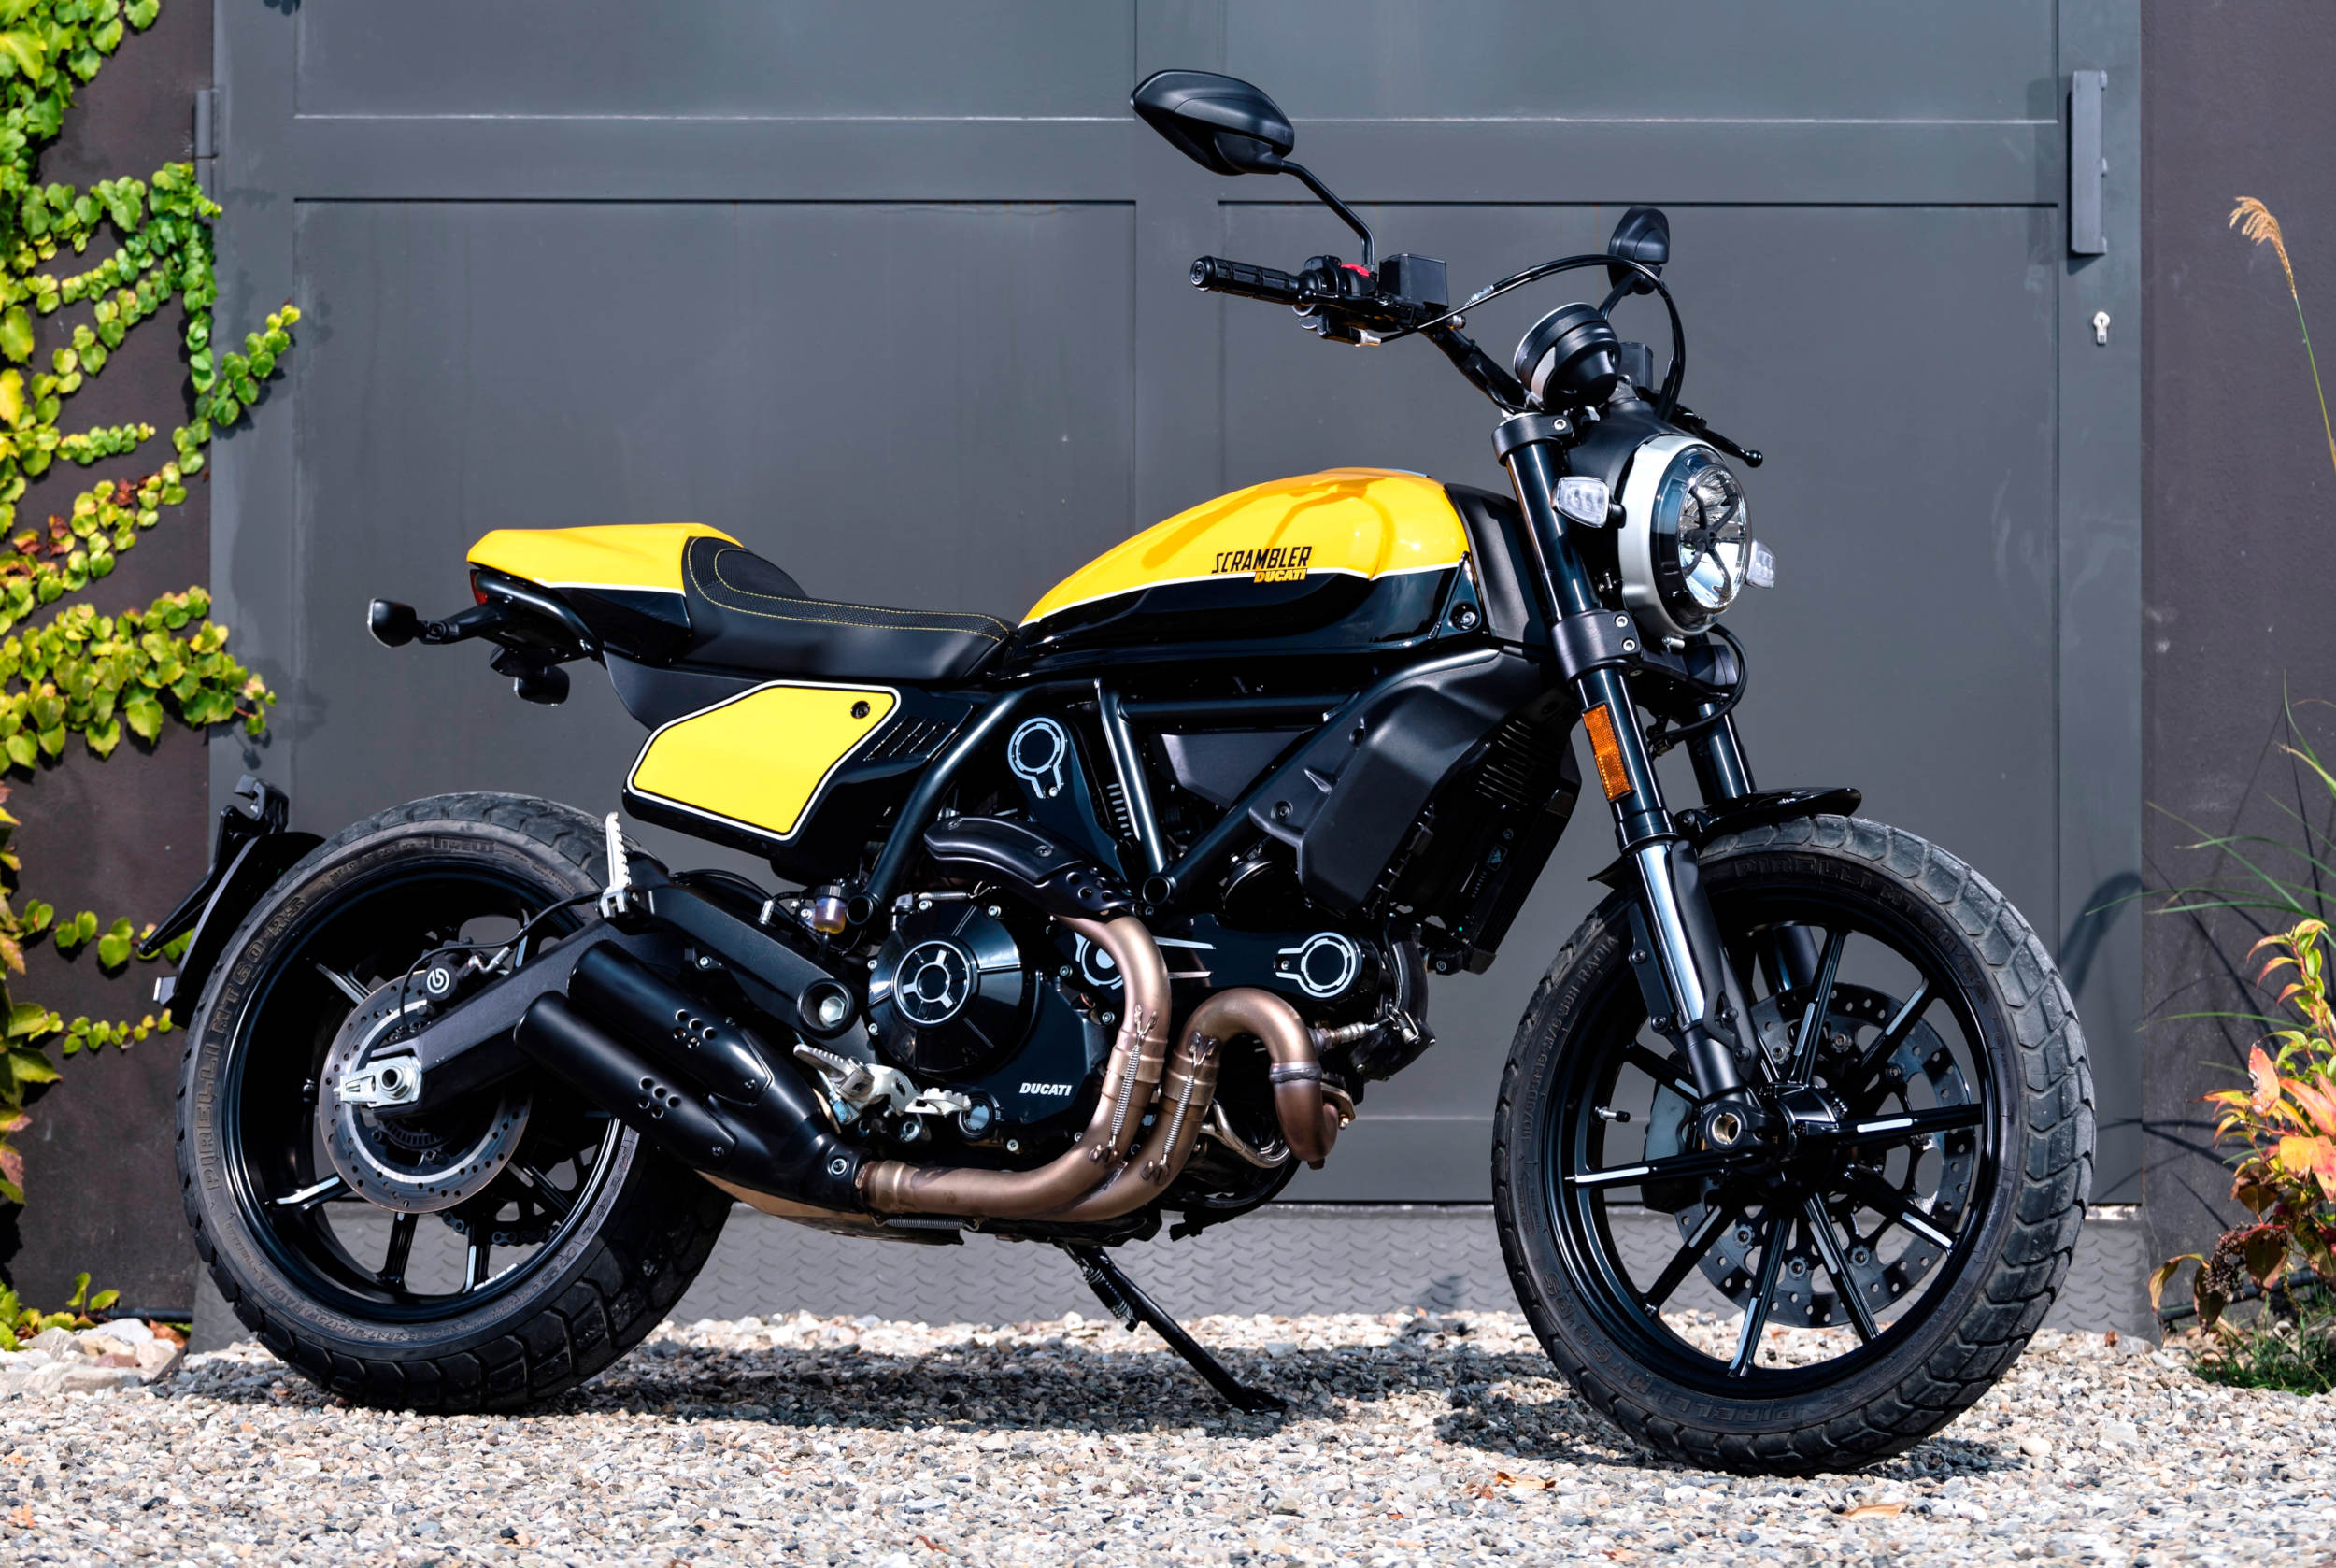 Ducati Updates Three More 800cc Scramblers For 2019